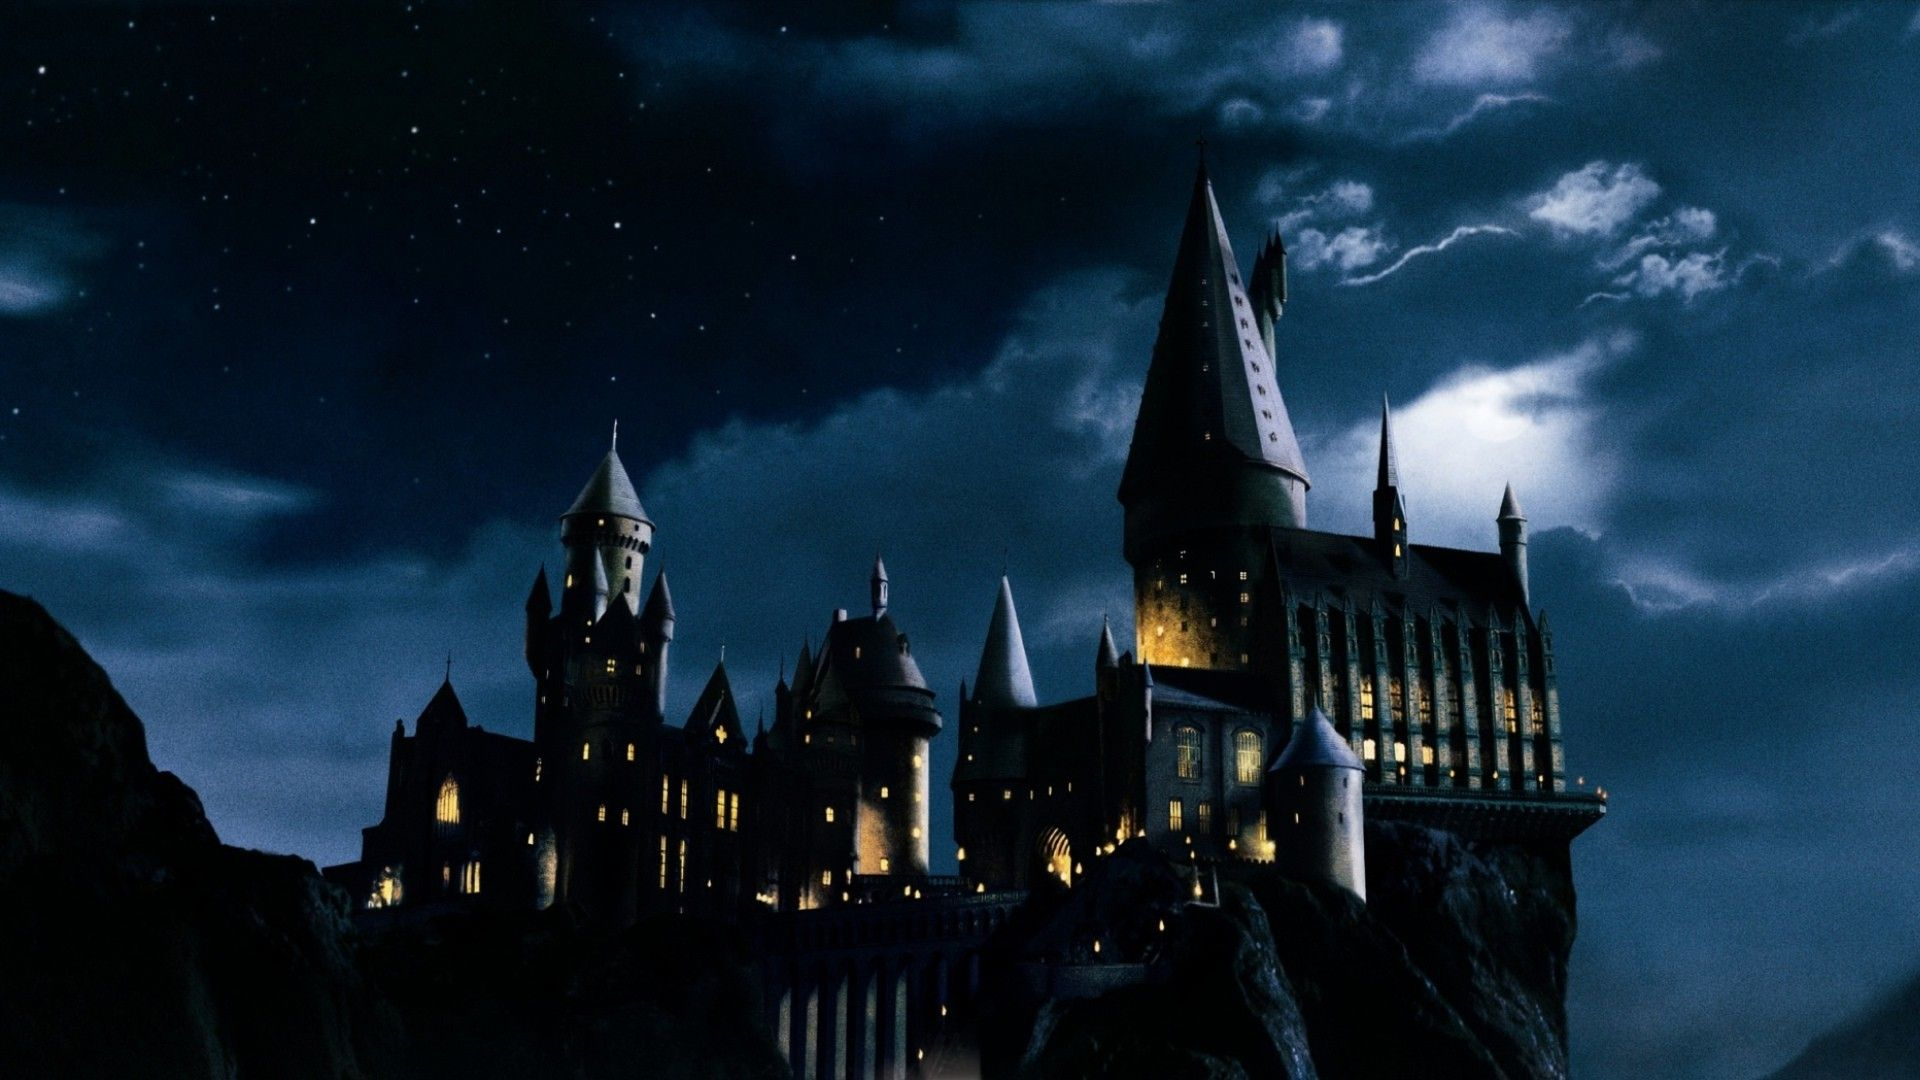 Harry Potter Hogwarts Wallpaper Wallpapersafari Harry Potter Wallpaper Hogwarts Castle Harry Potter Background